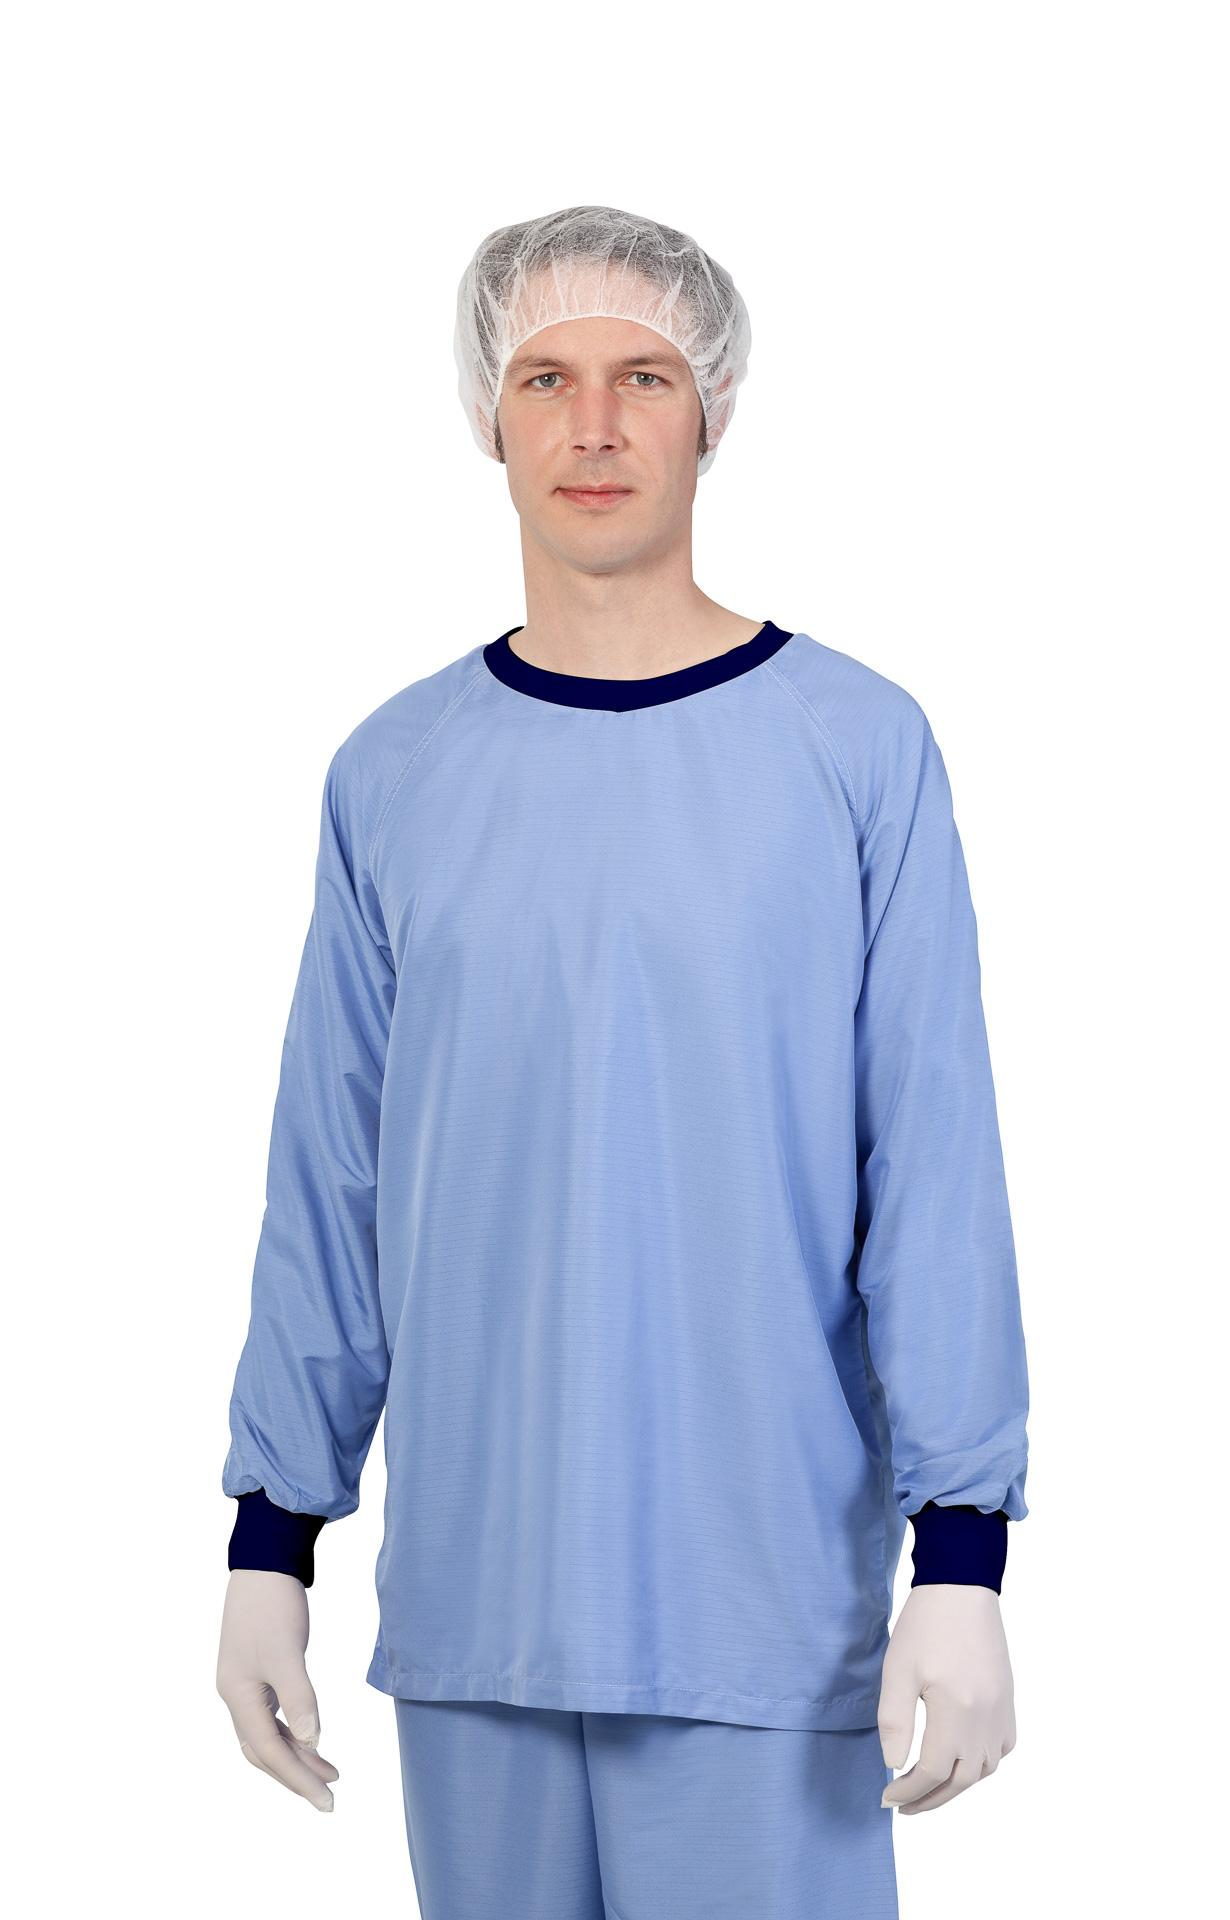 Cleanroom reusable underwear upper part, for cleanroom class ISO 7-8, GMP B-C